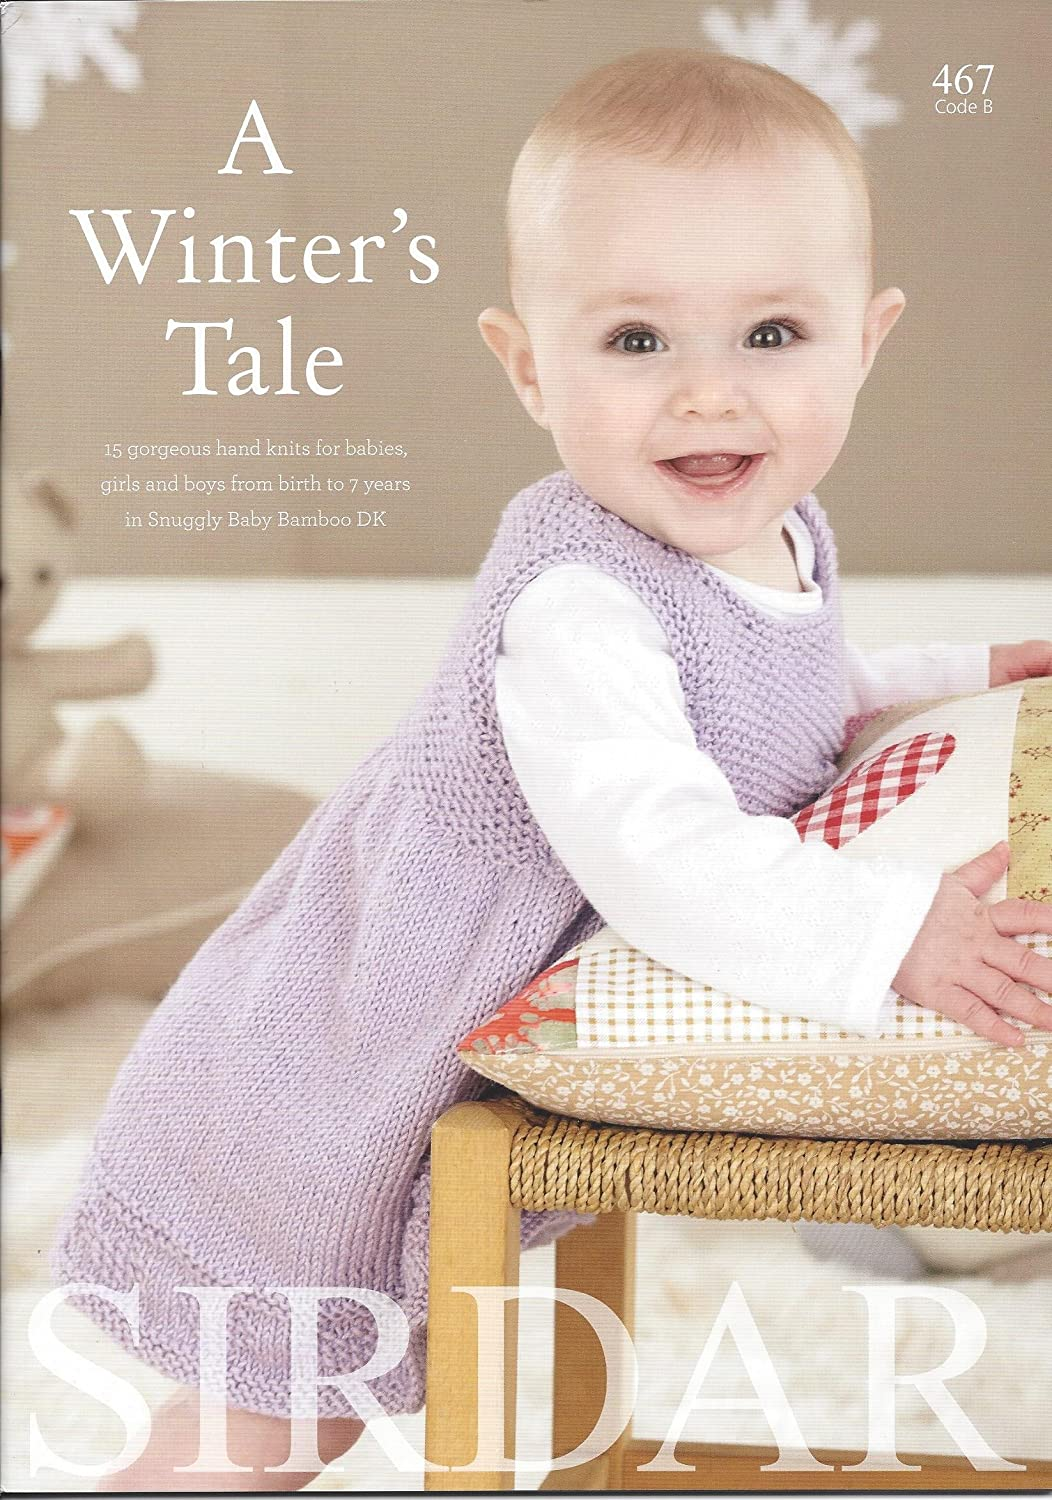 Amazon.com: Sirdar Knitting Pattern Book 467 - A Winter\'s Tale by ...